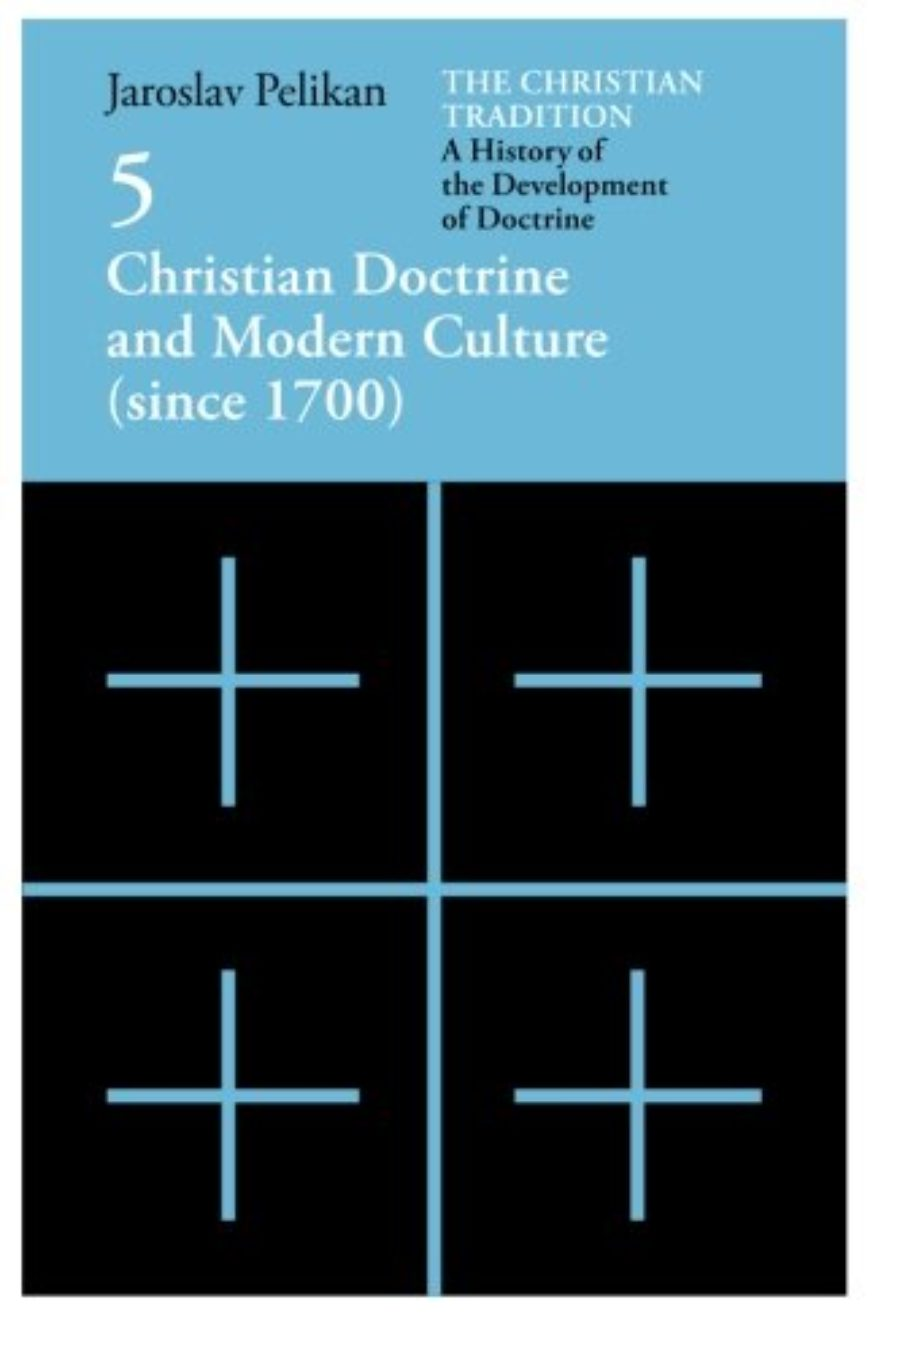 Cover of The Christian Tradition: A History of the Development of Doctrine, Vol. 5: Christian Doctrine and Modern Culture (since 1700) (Volume 5)